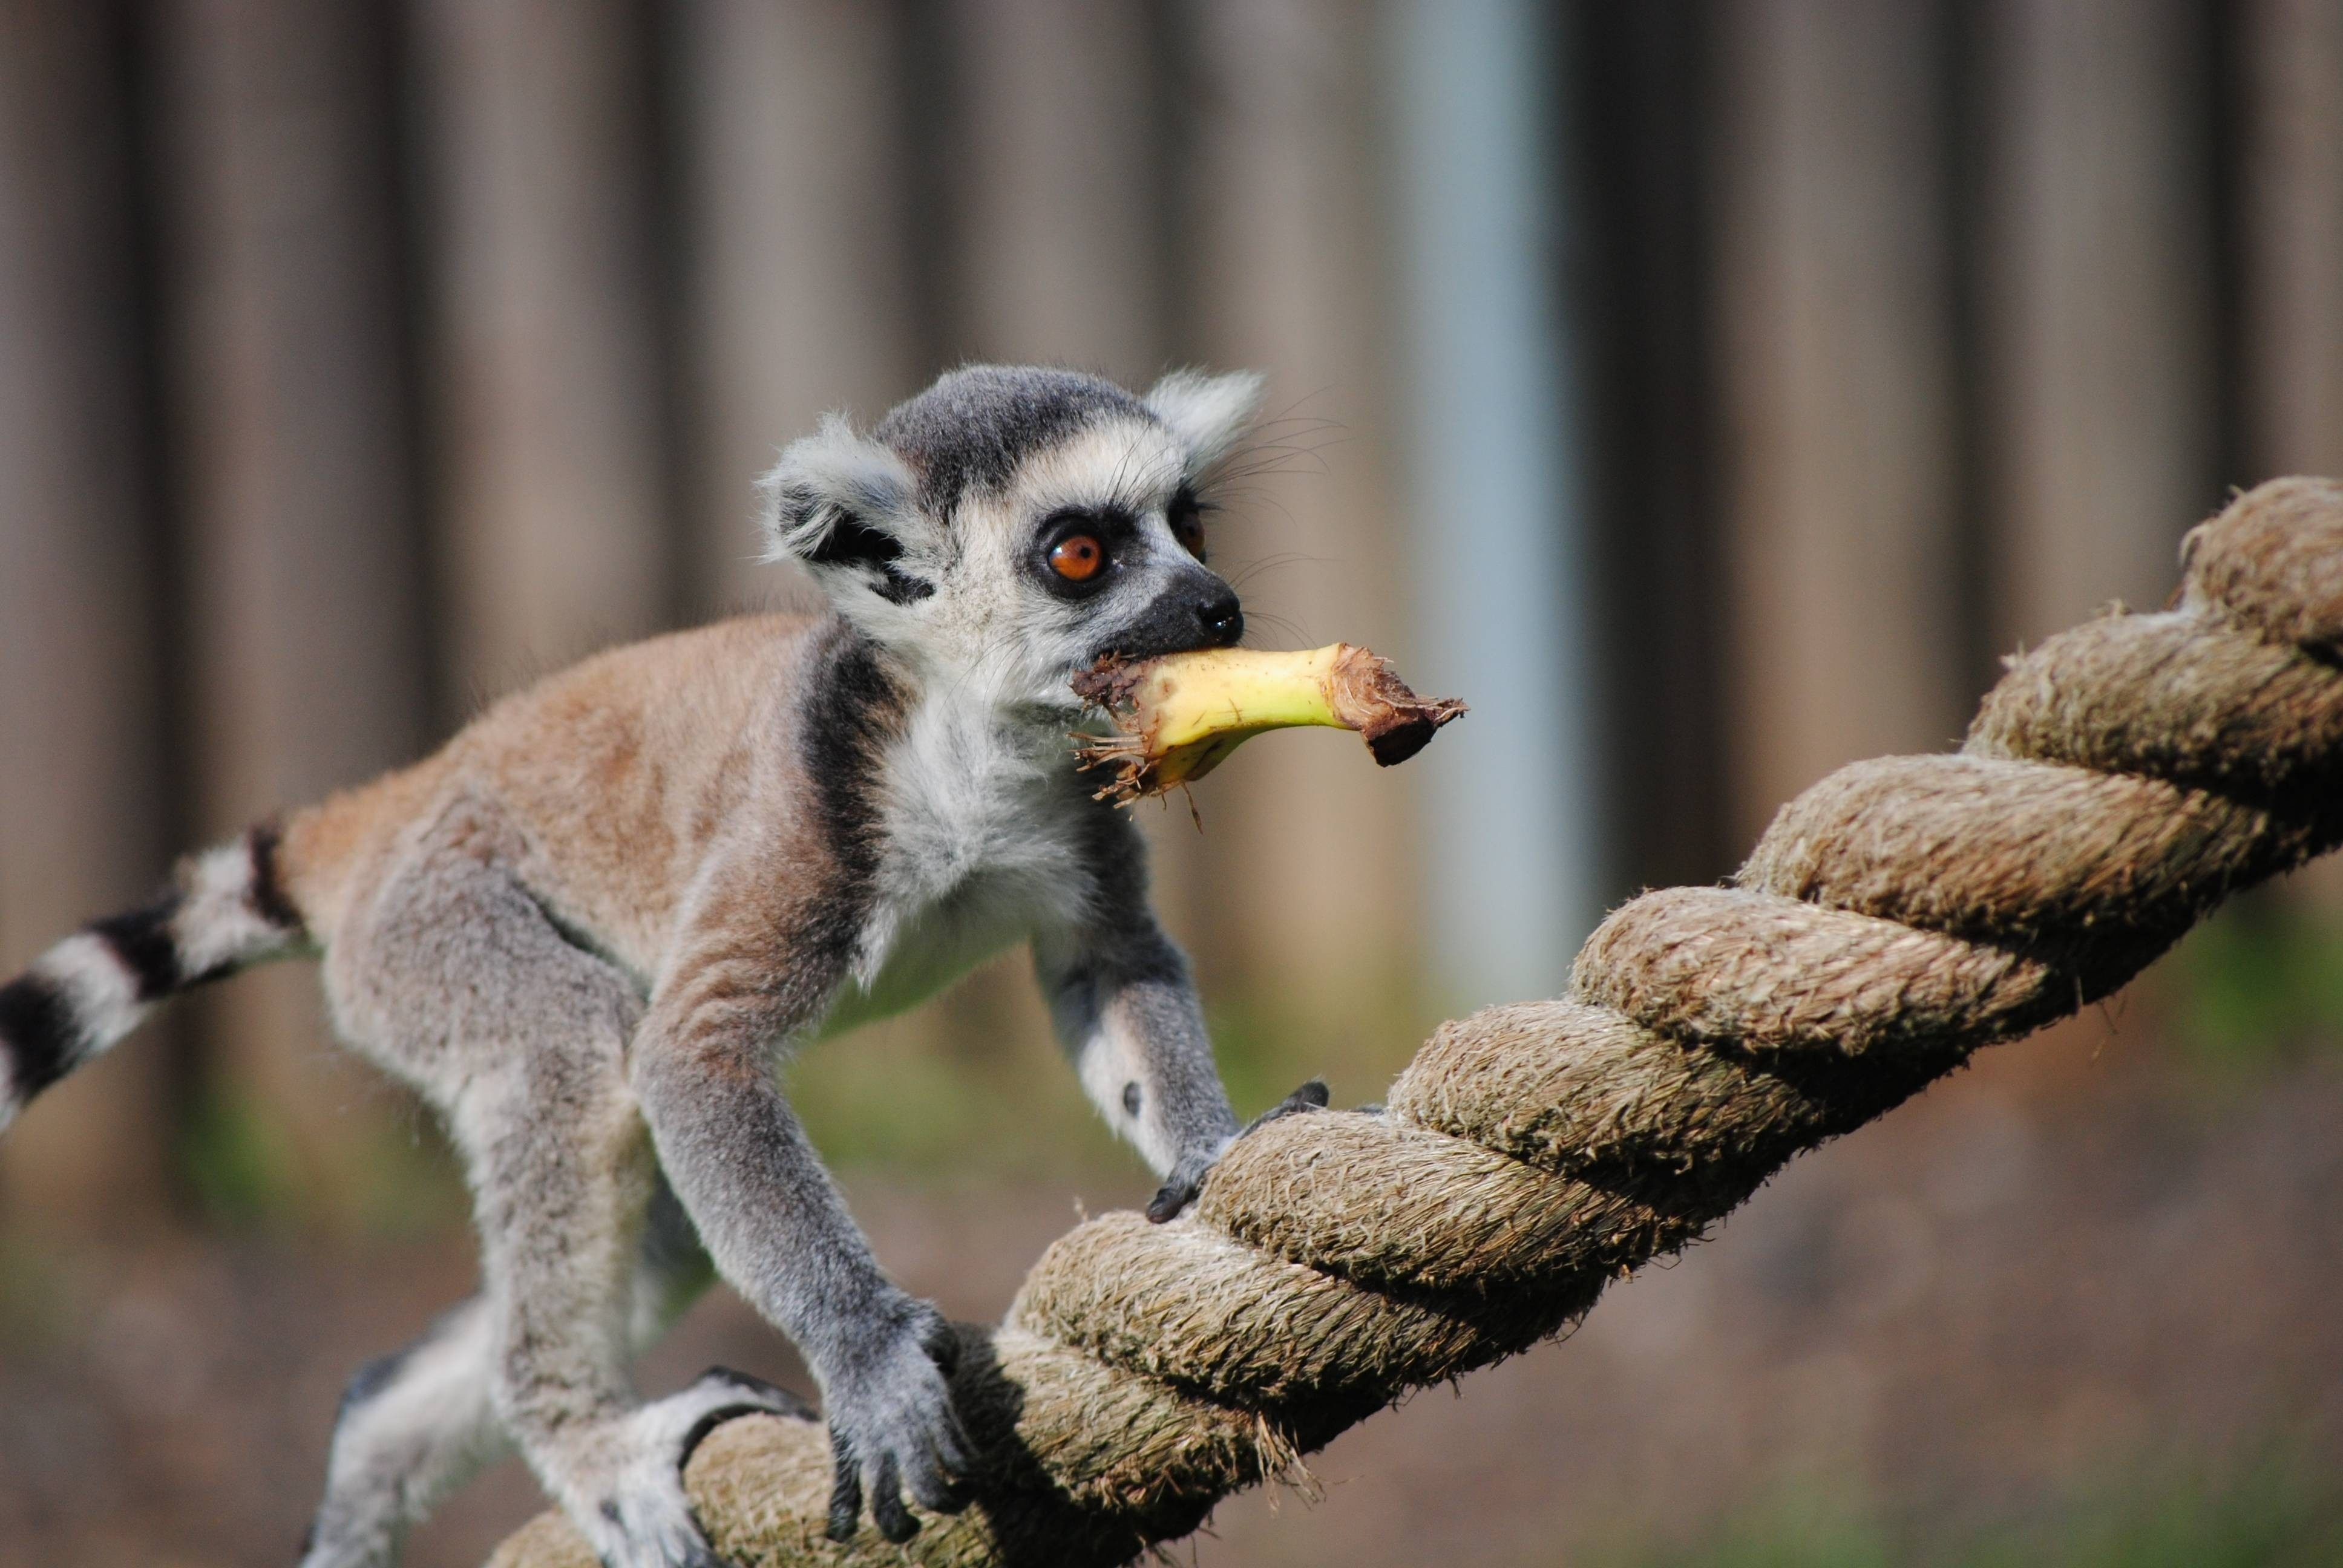 107114 download wallpaper Animals, Lemur, Rope, Cable, Stroll, Animal, Food screensavers and pictures for free